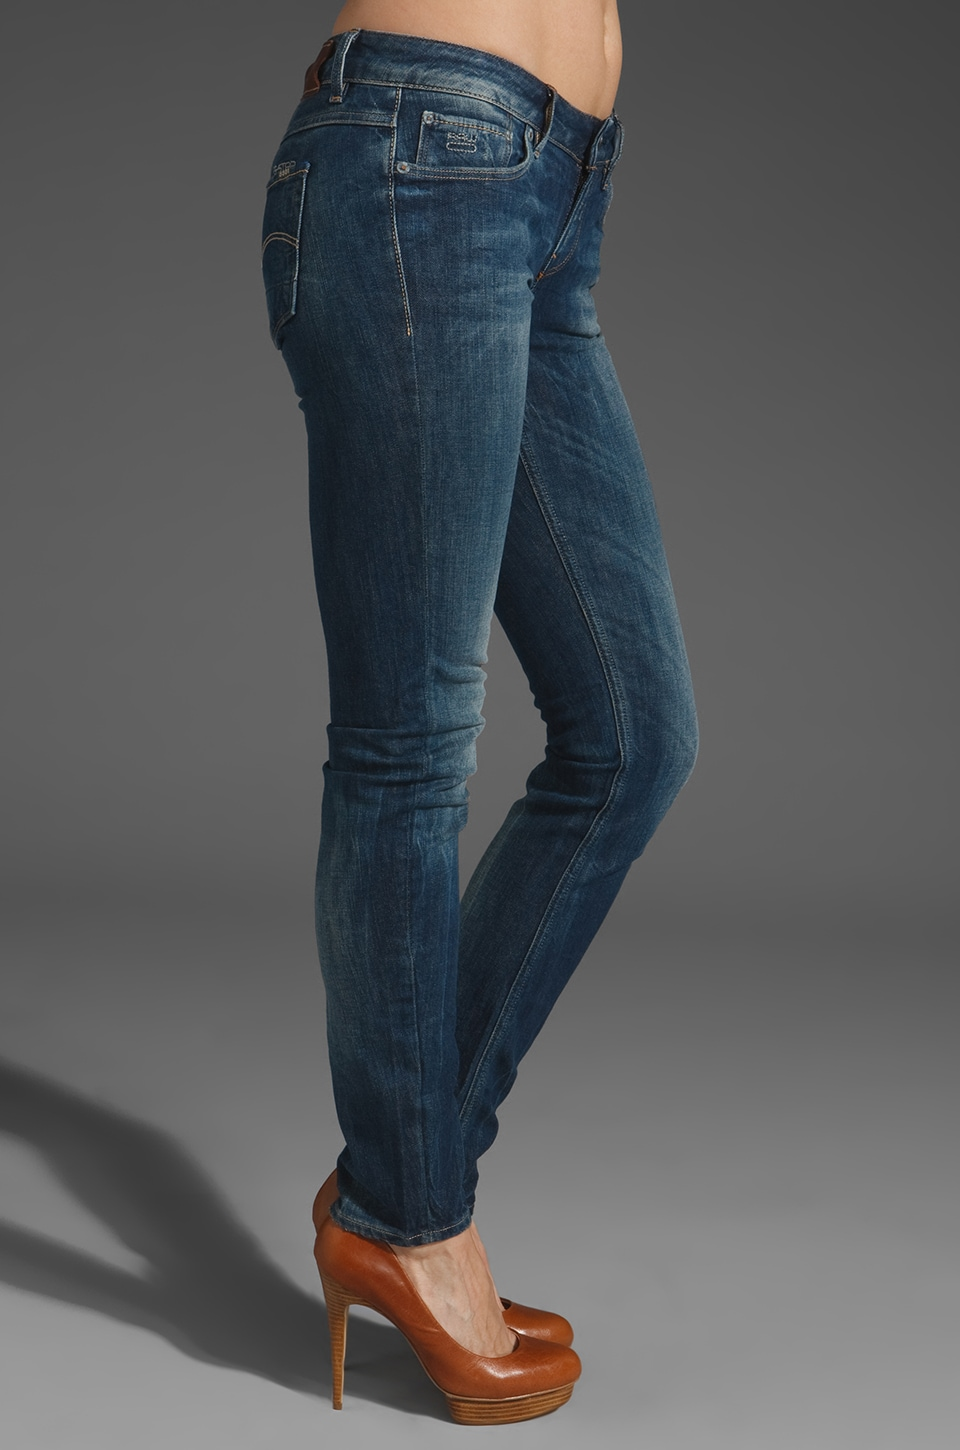 G-Star 3301 Skinny in Comfort D.I. Rugby Wash